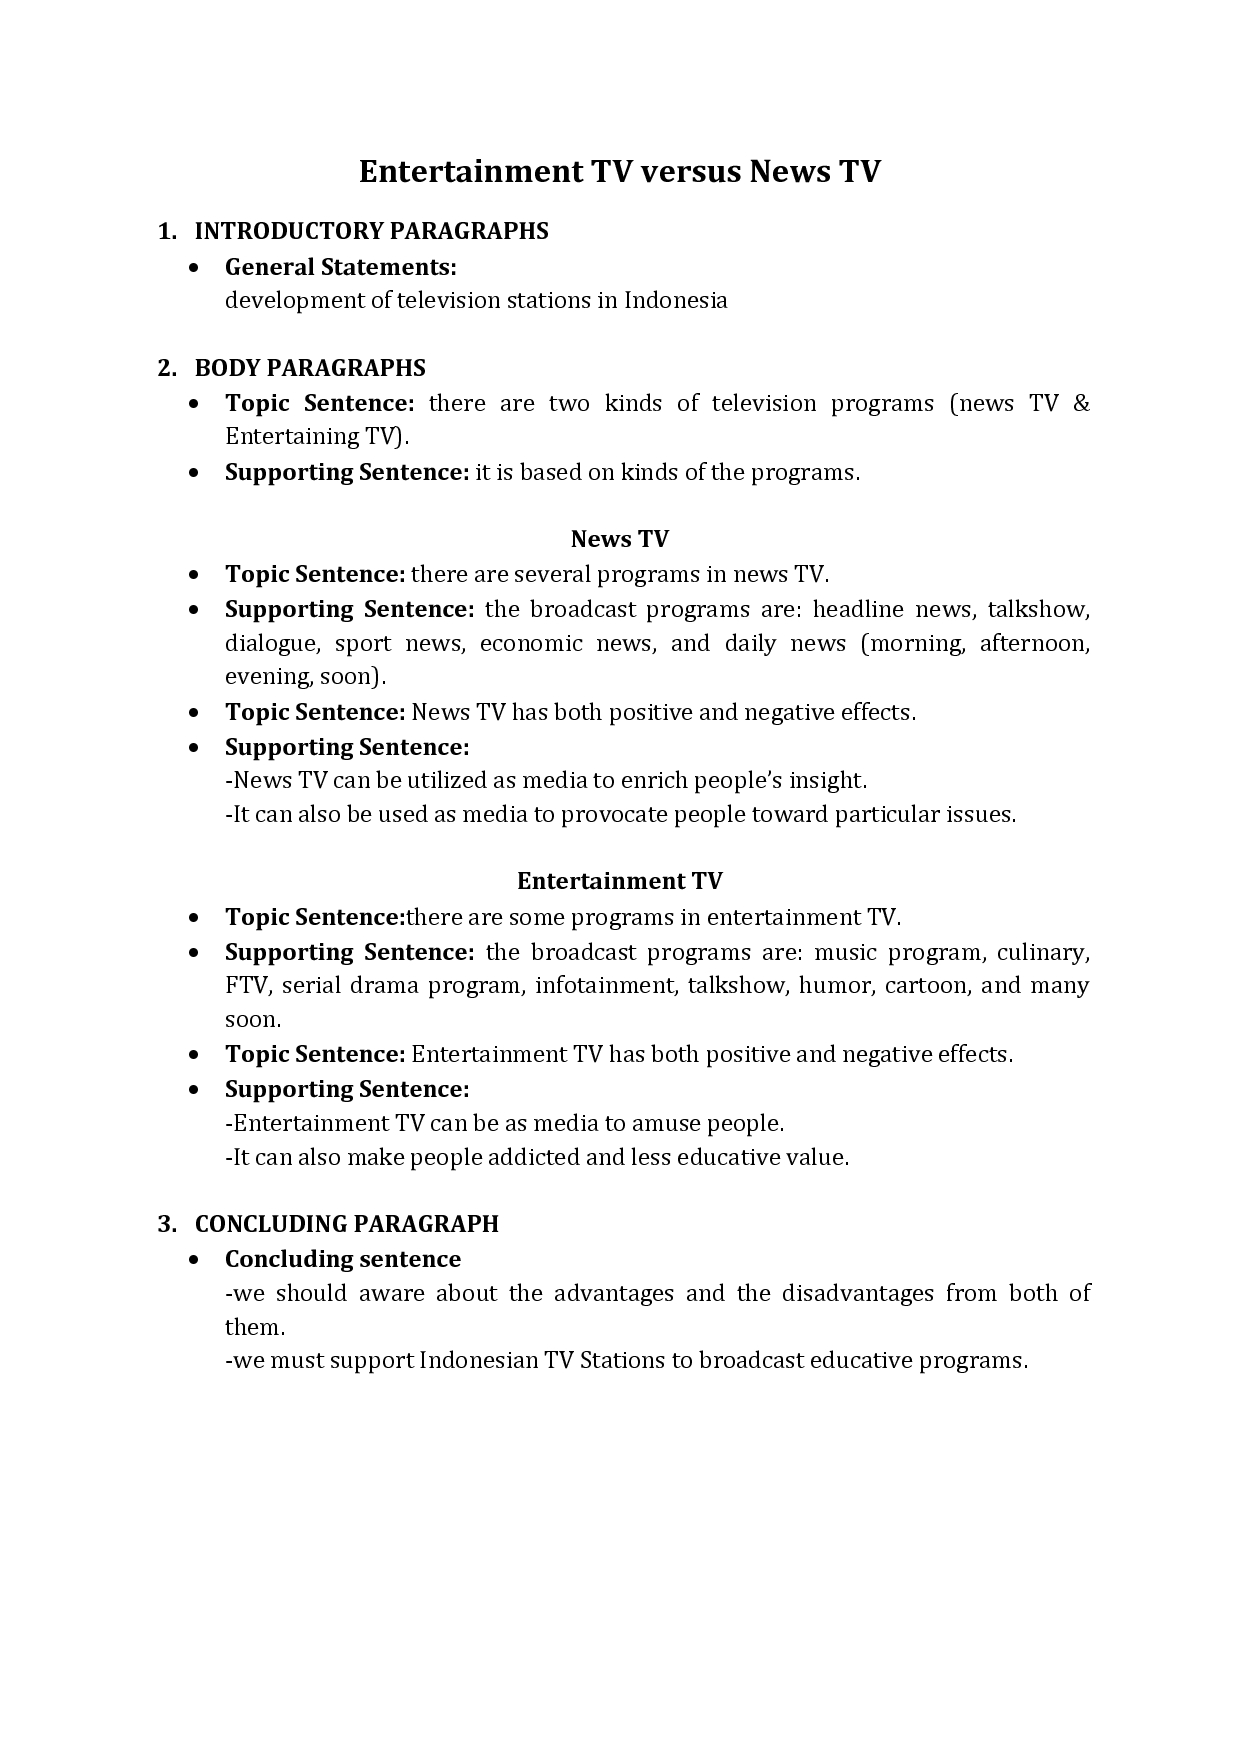 013 Essay Example College Outline Examples And Search On Pinterest Inmat What Is An Singular For Follows A Generic Argumentative About Capitalism Socialism Brainly Full